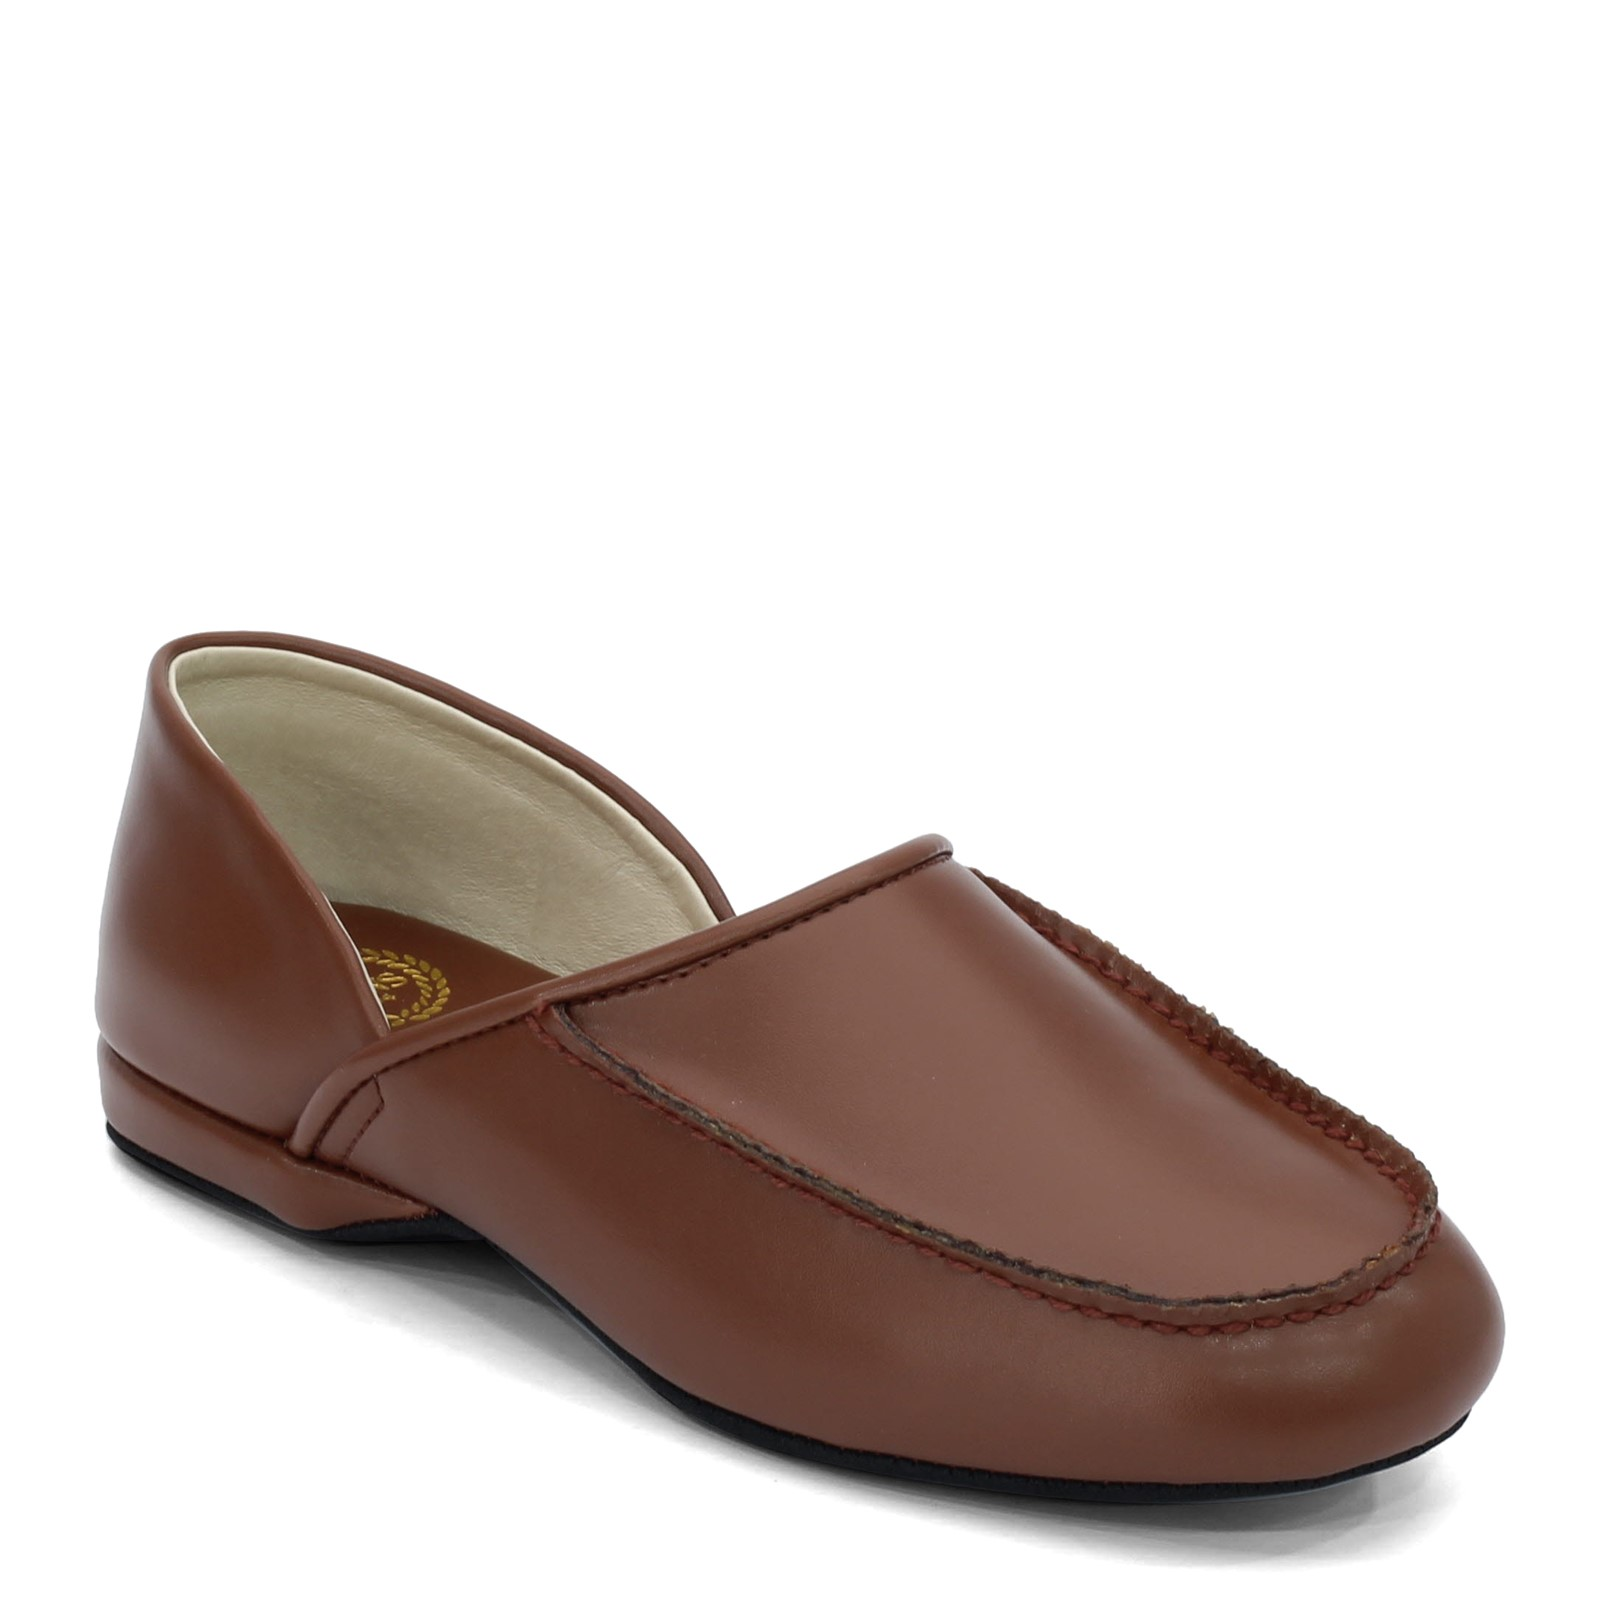 Men's L.B. Evans, Chicopee Slipper